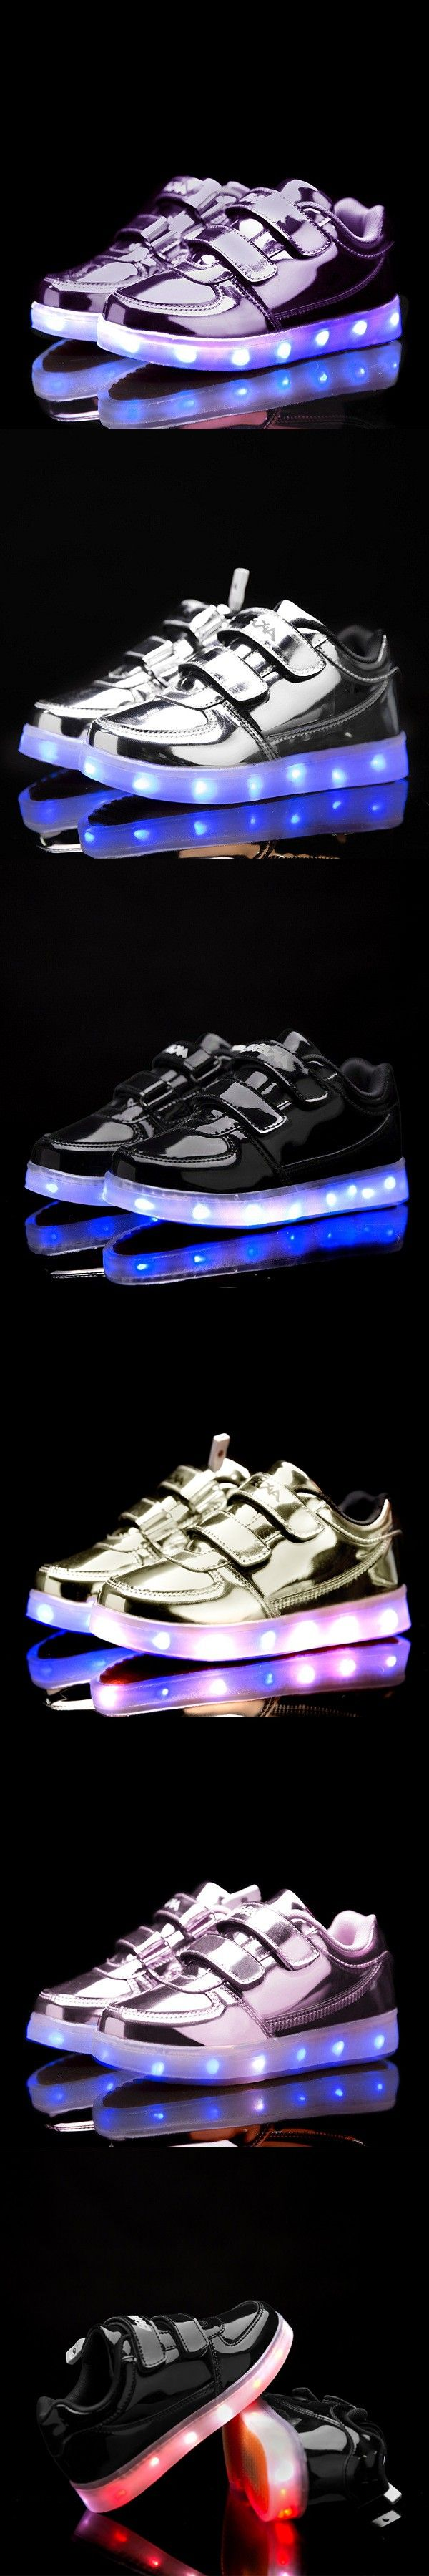 Classic White Child Lighted Shoes For Girls Boys Colorful Glow Kids Sneakers Charge Luminous Teenage Shoes Chaussure Enfant LED $27.8